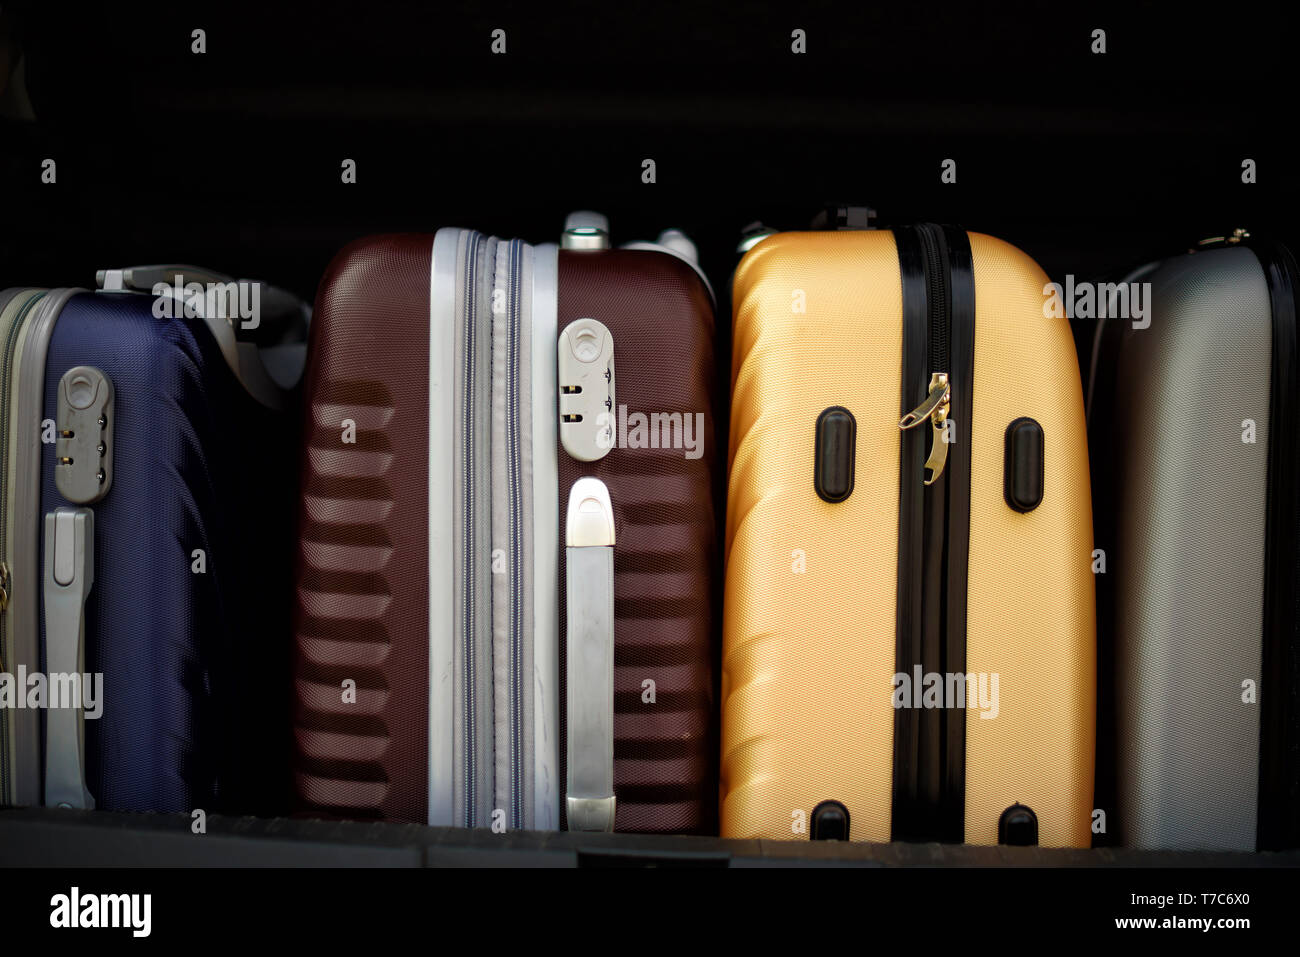 Suitcases and bags in car trunk. Summer holidays, travel, trip, adventure concept - Stock Image